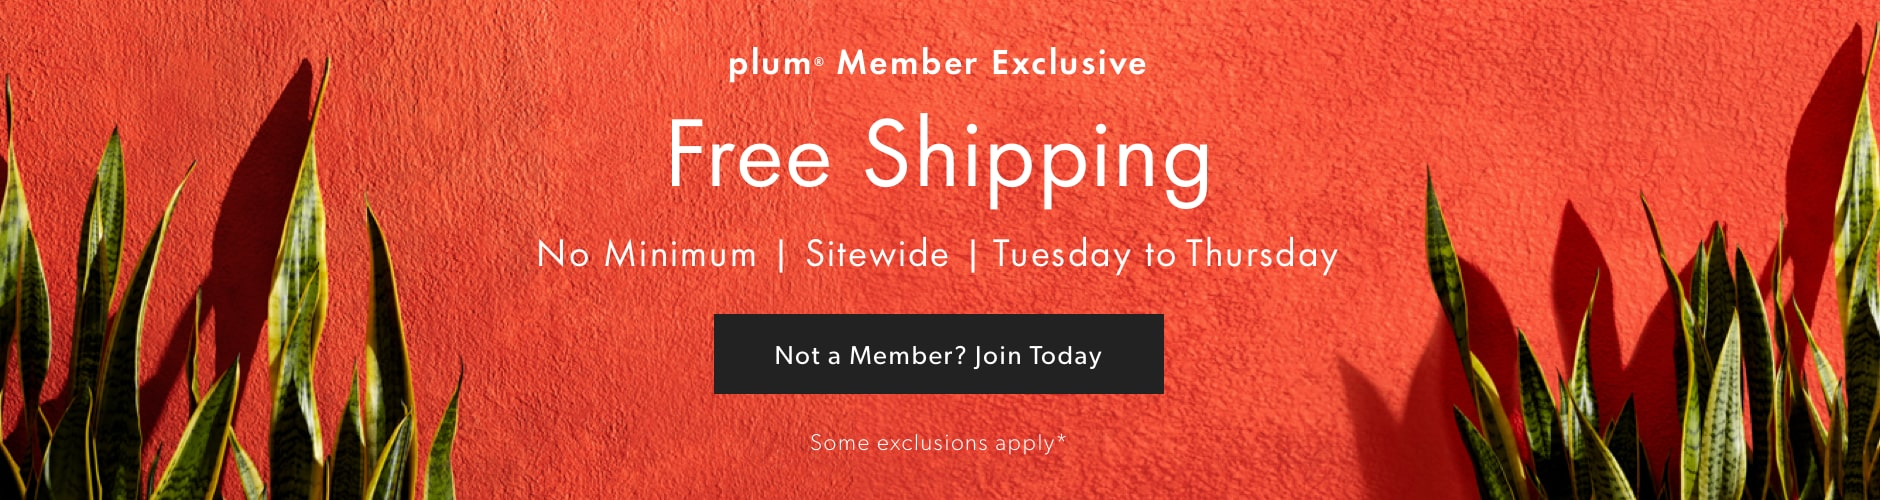 plum Member Exclusive - Free Shipping No Minimum - May 19 - 21, 2020